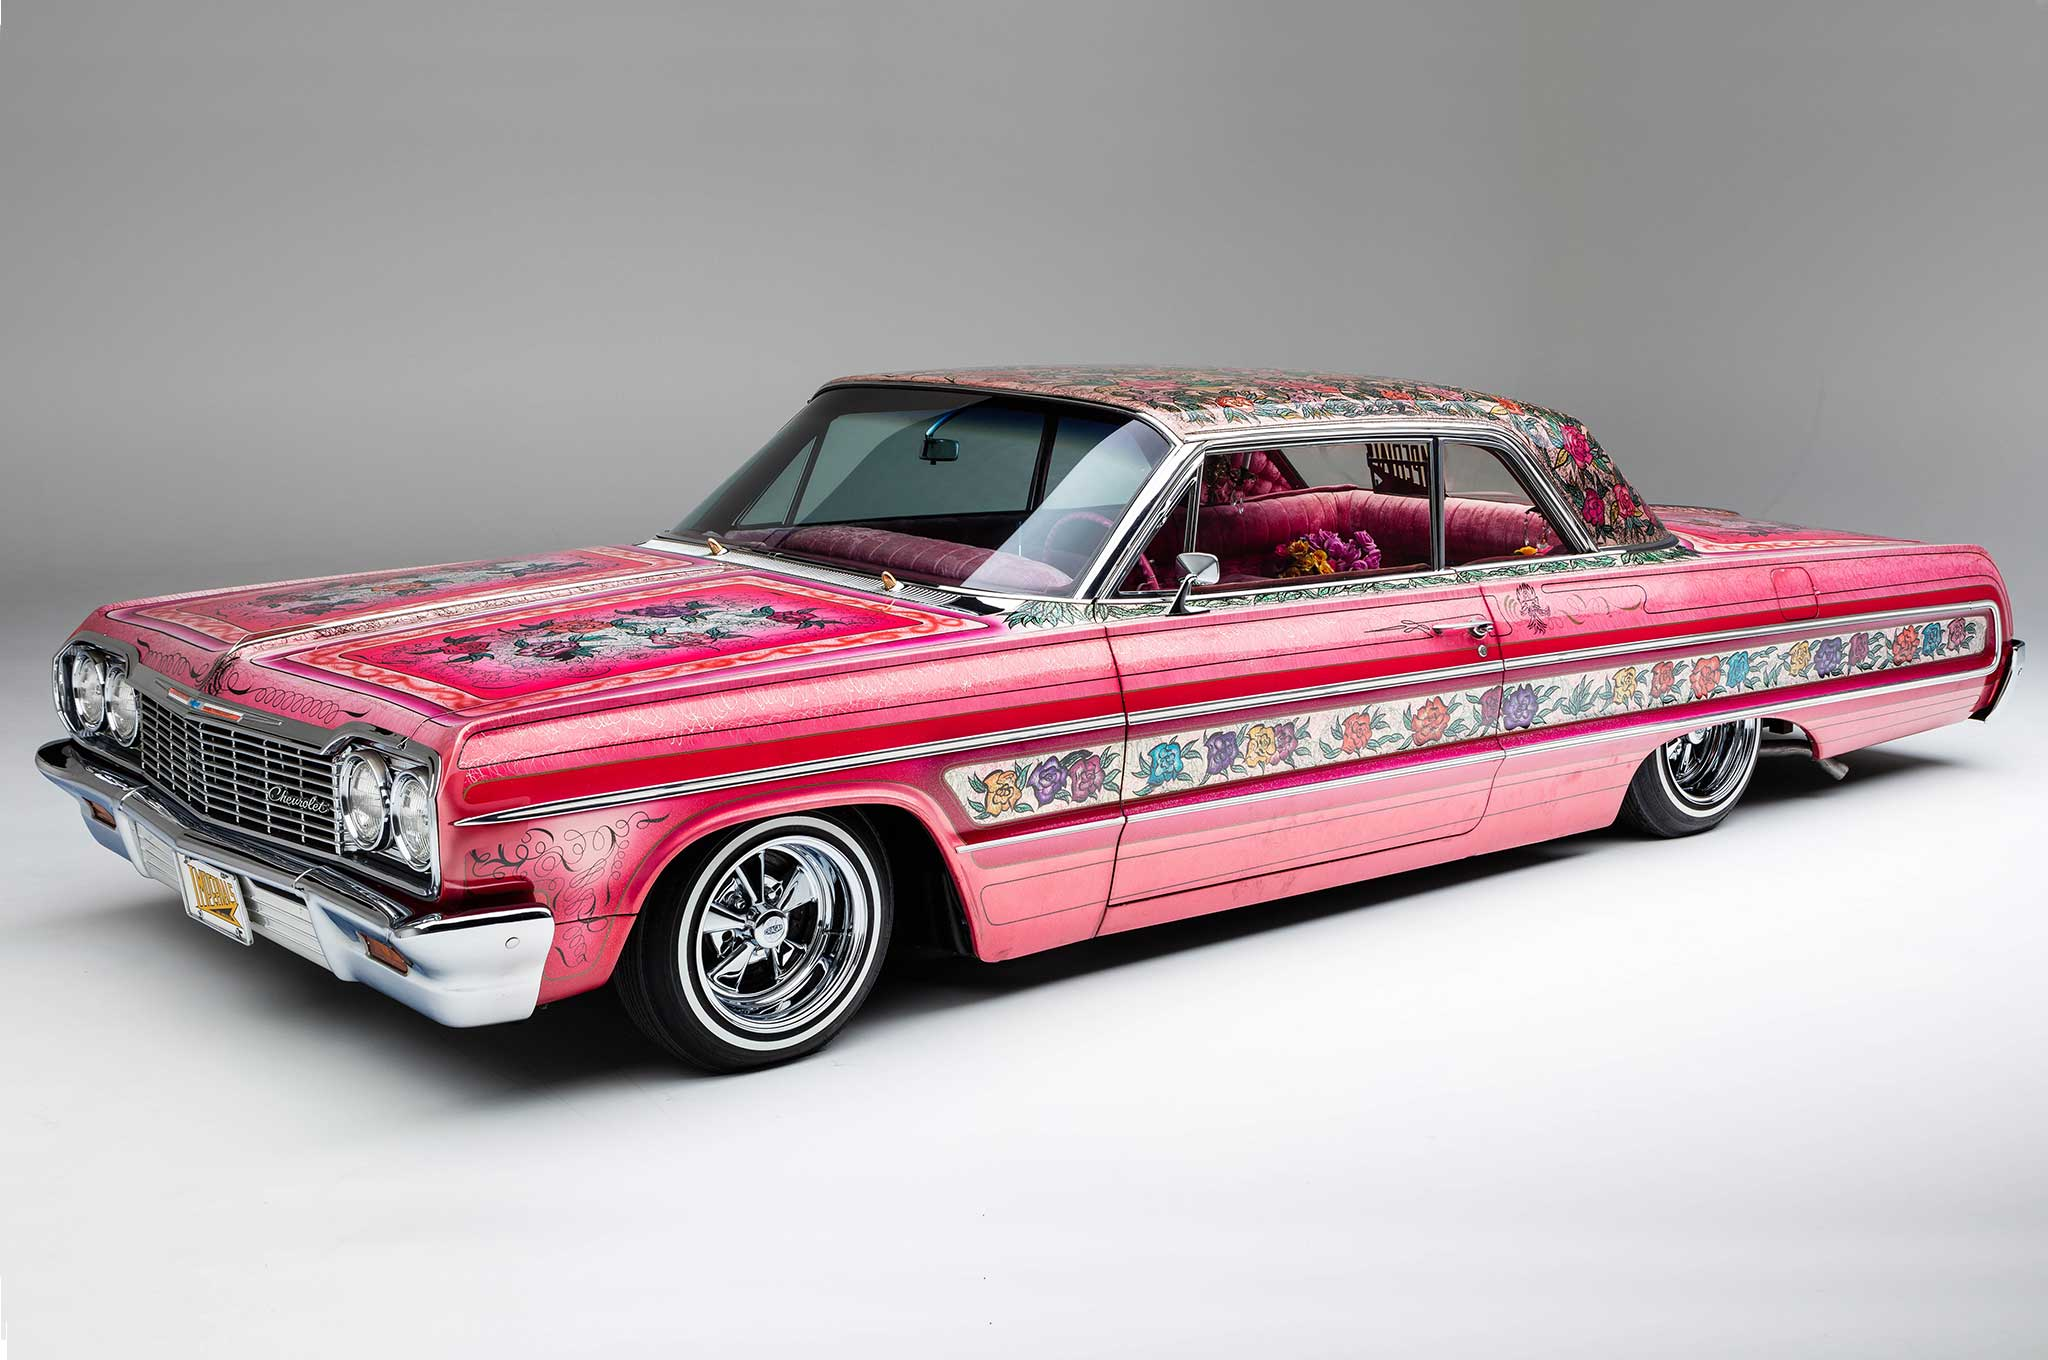 Lowriders Cars For Sale >> Gypsy Rose Will be on Display at the National Mall